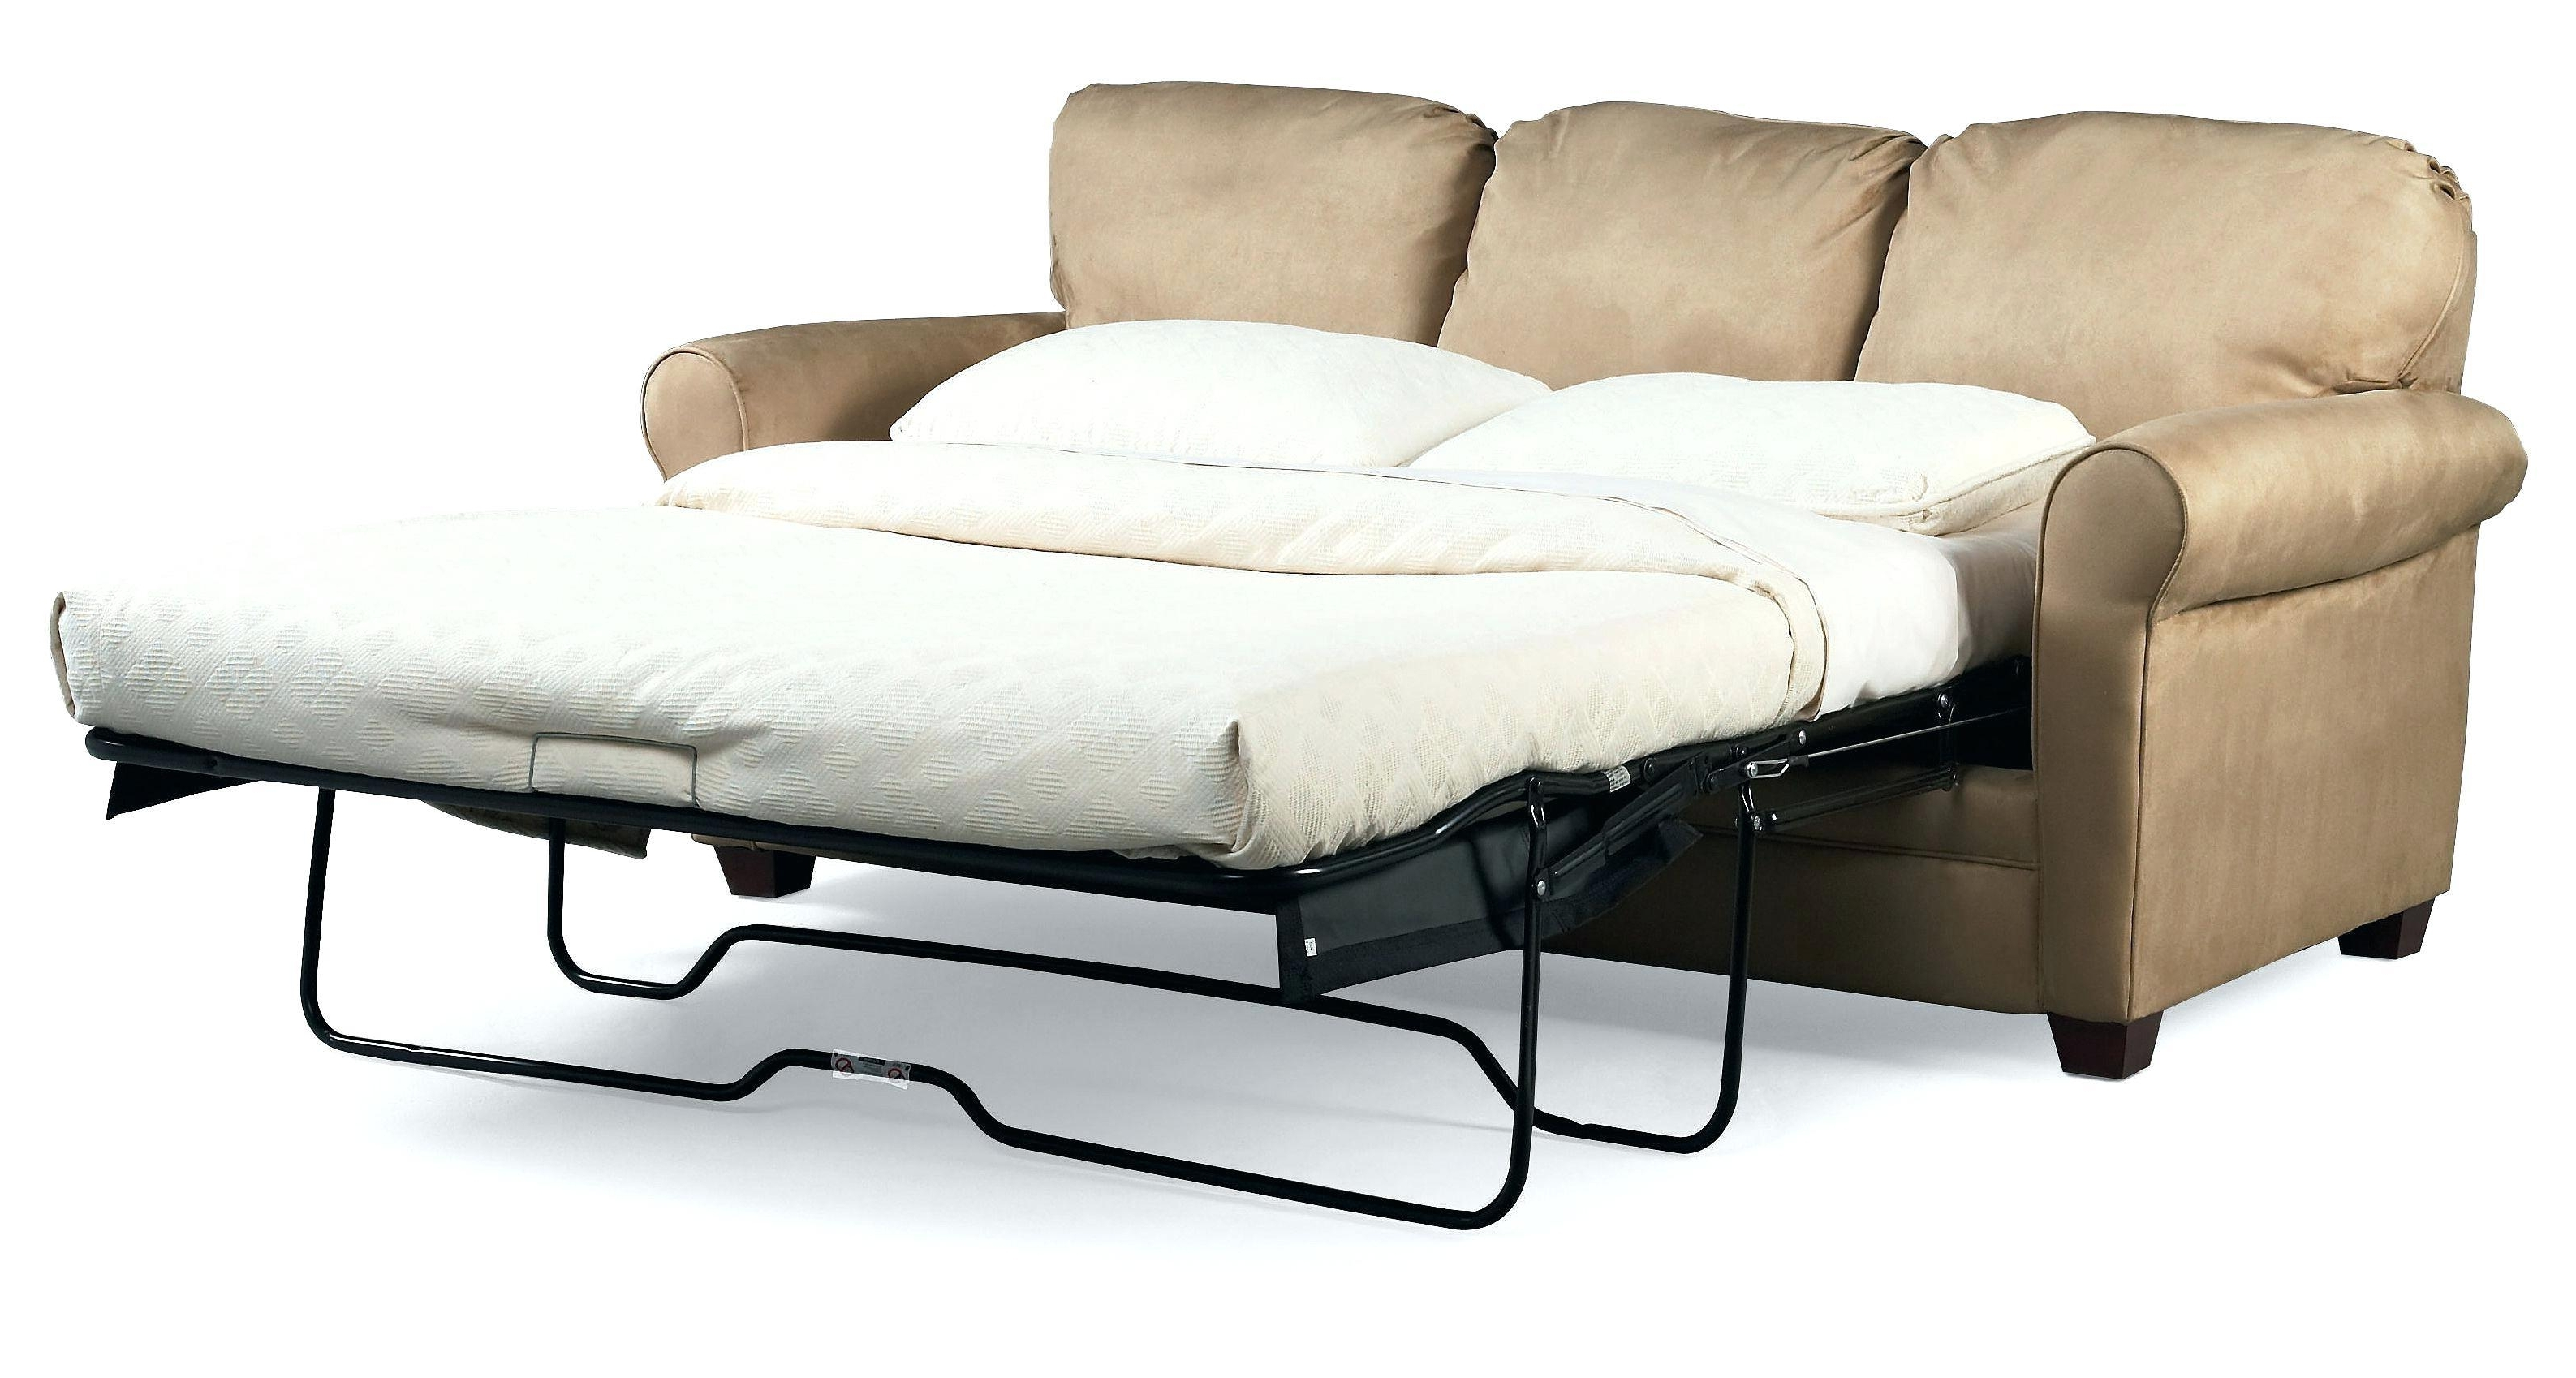 Popular Awesome Queen Size Sleeper Sofa Sa With Memory Foam Mattress Provo Intended For Queen Size Sofas (View 9 of 20)